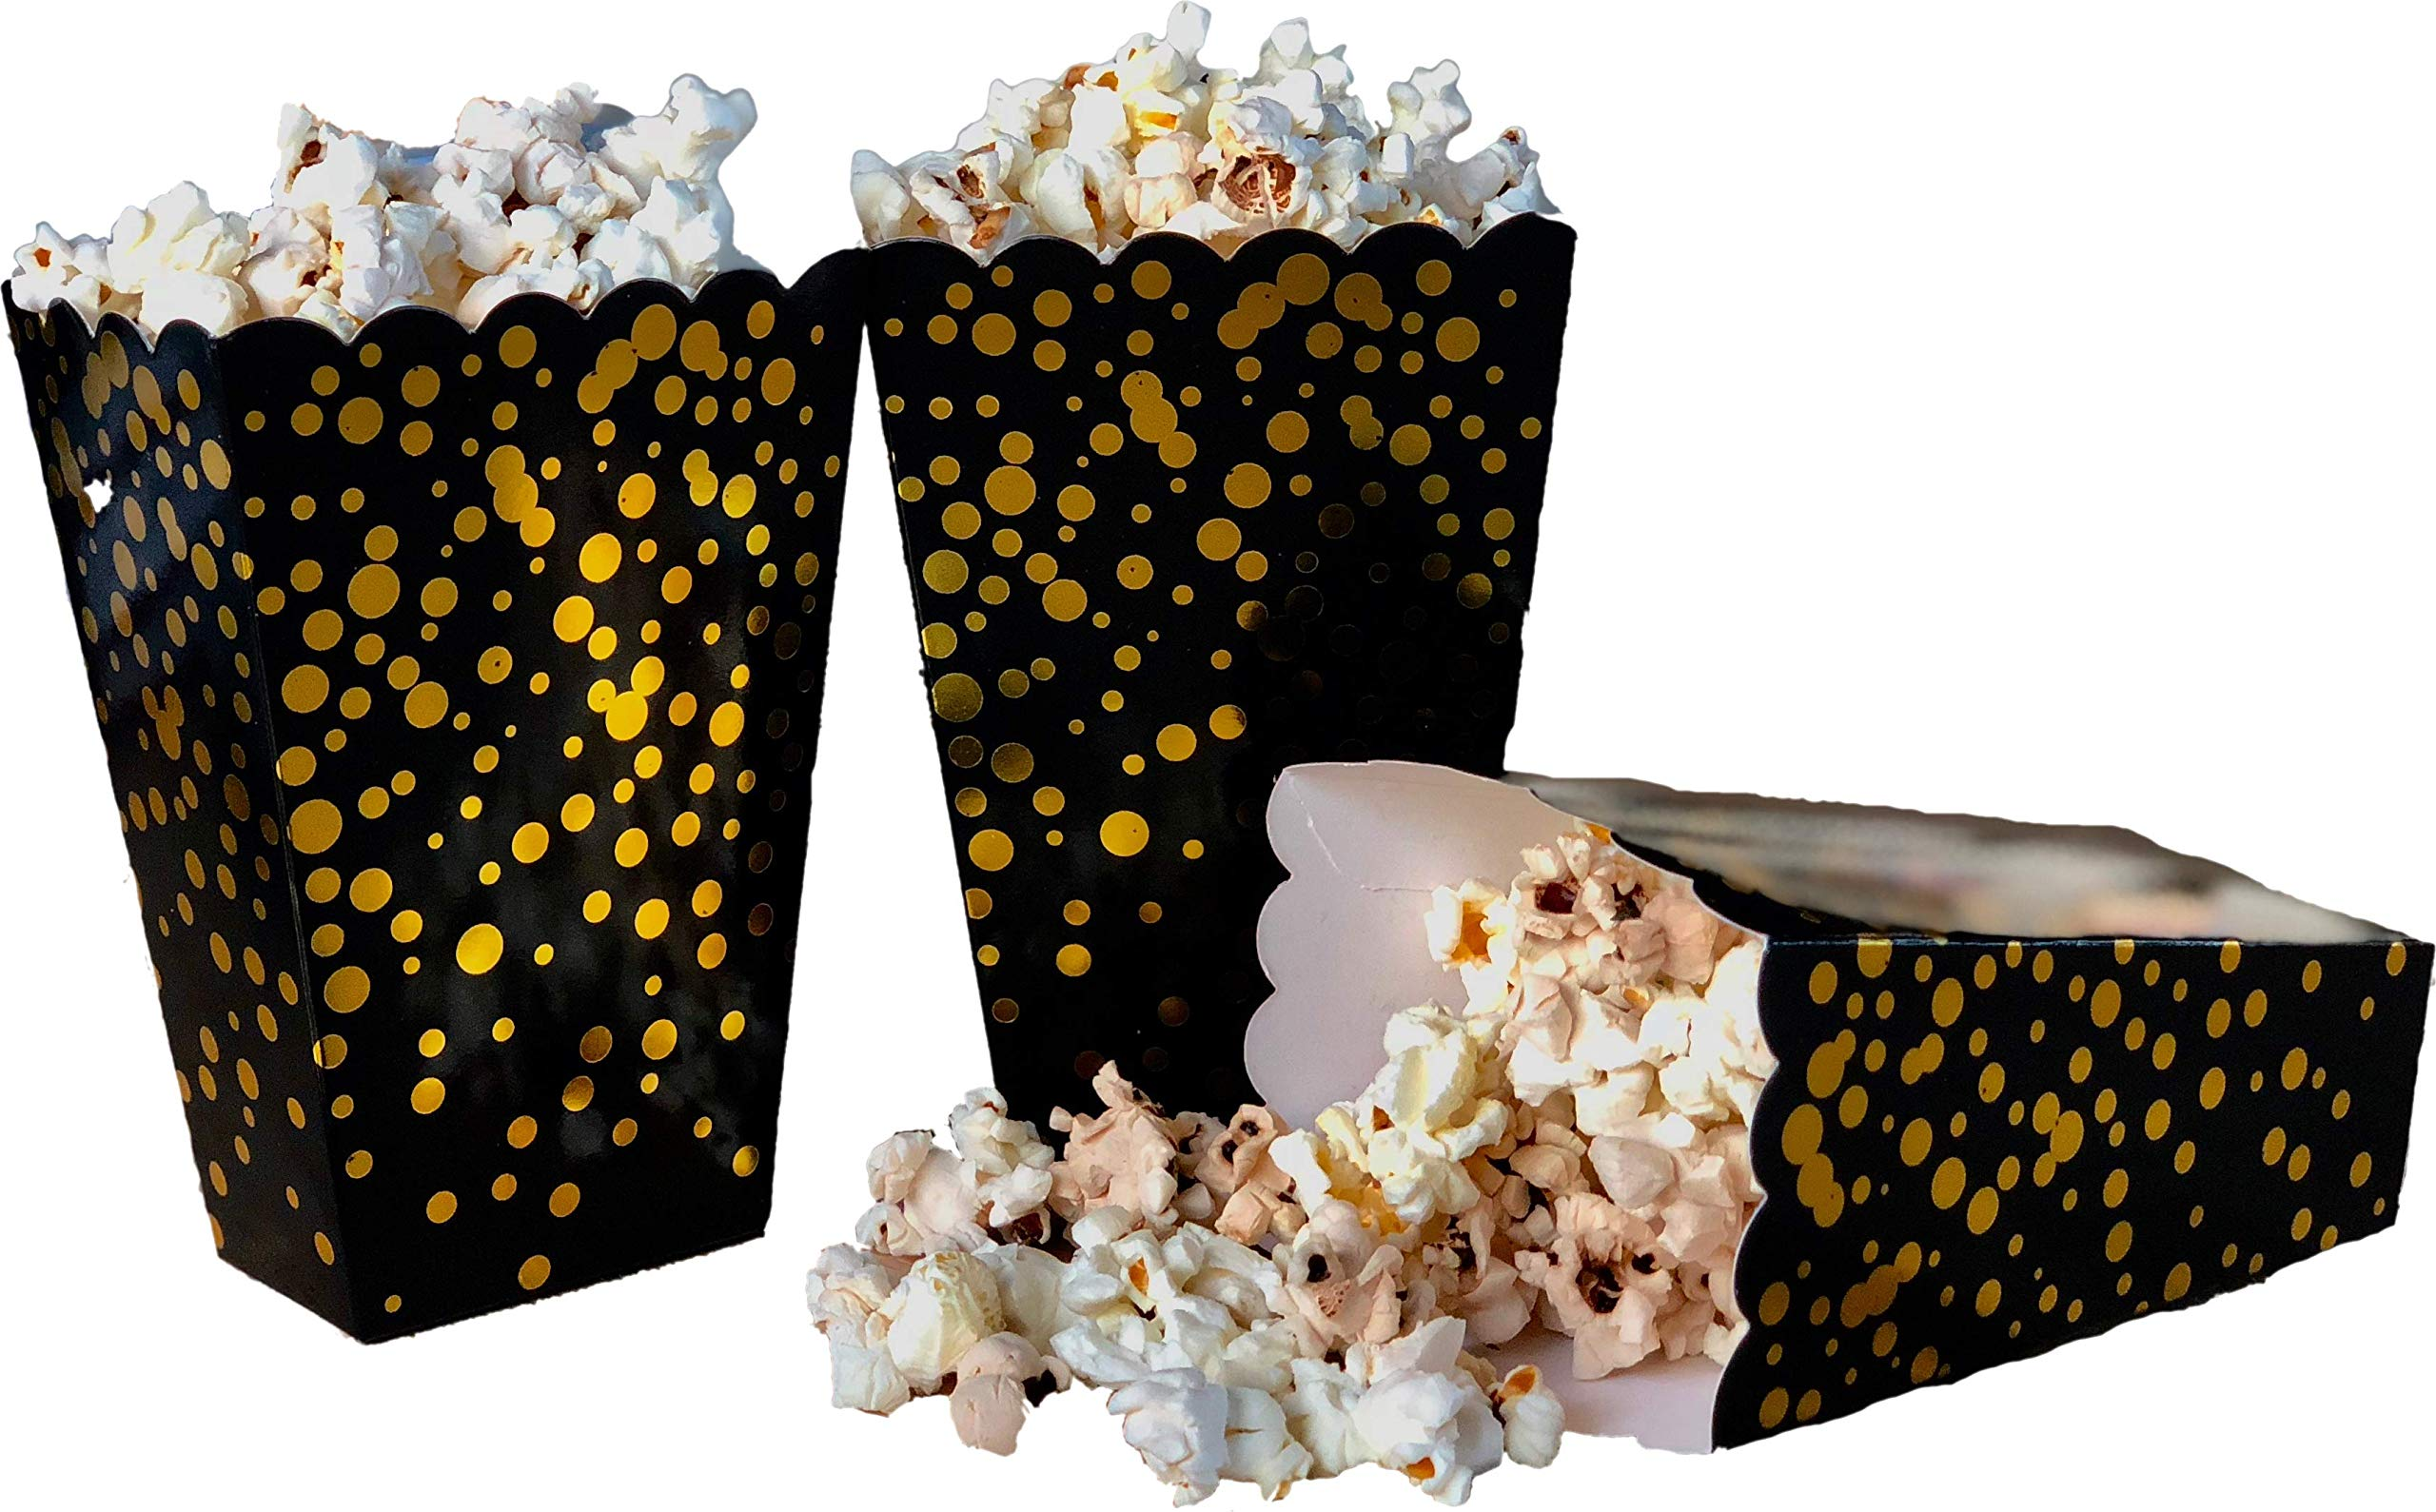 Favor Boxes - 50 Pack 20oz Popcorn boxes - Black with Gold Foil dot sprinkles - Perfect for Birthday, Christmas, Graduation, Cocktail and NYE Party Celebration - 3'' x 3'' x 5''